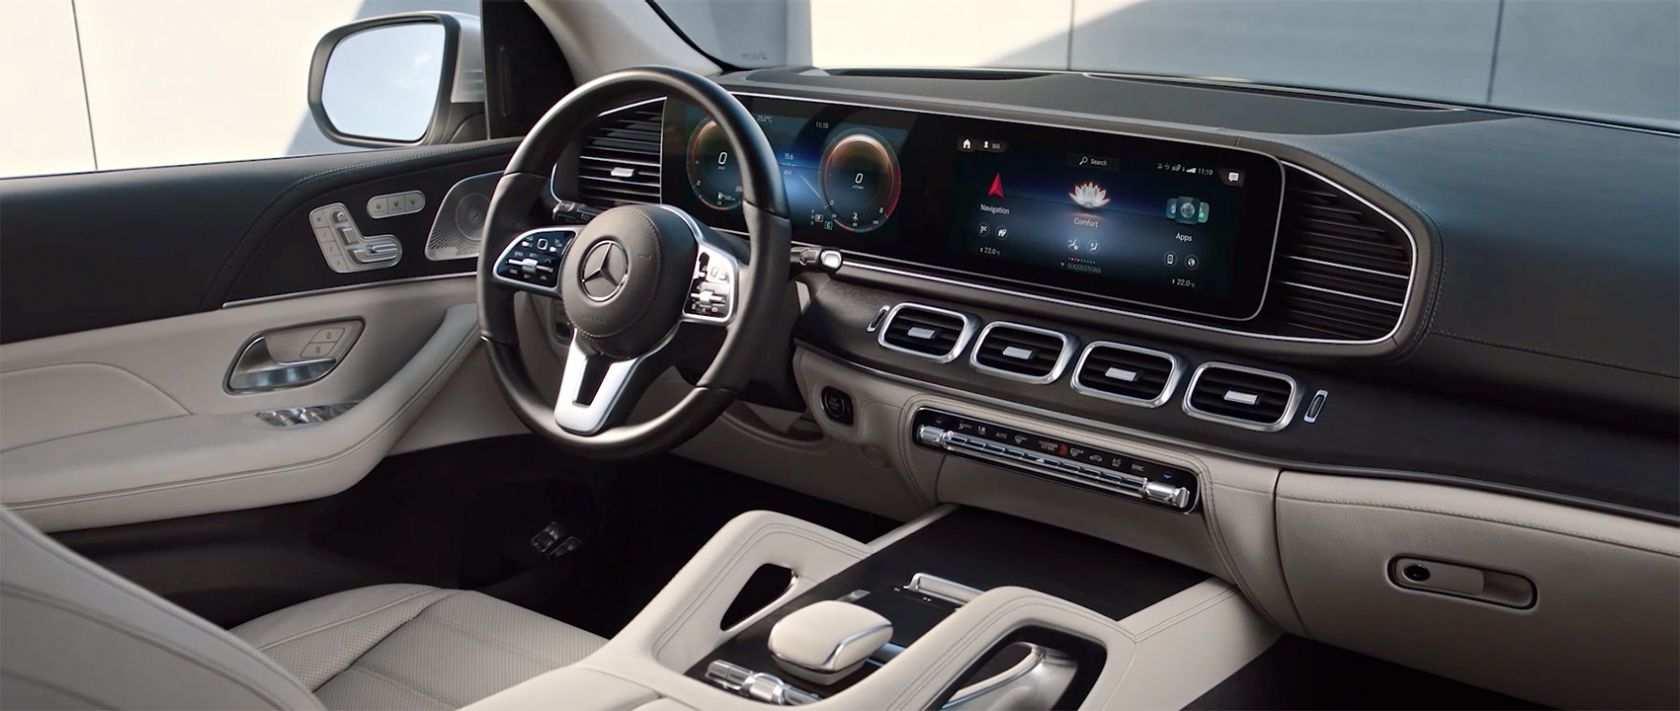 79 A 2019 Mercedes GLS Review And Release Date